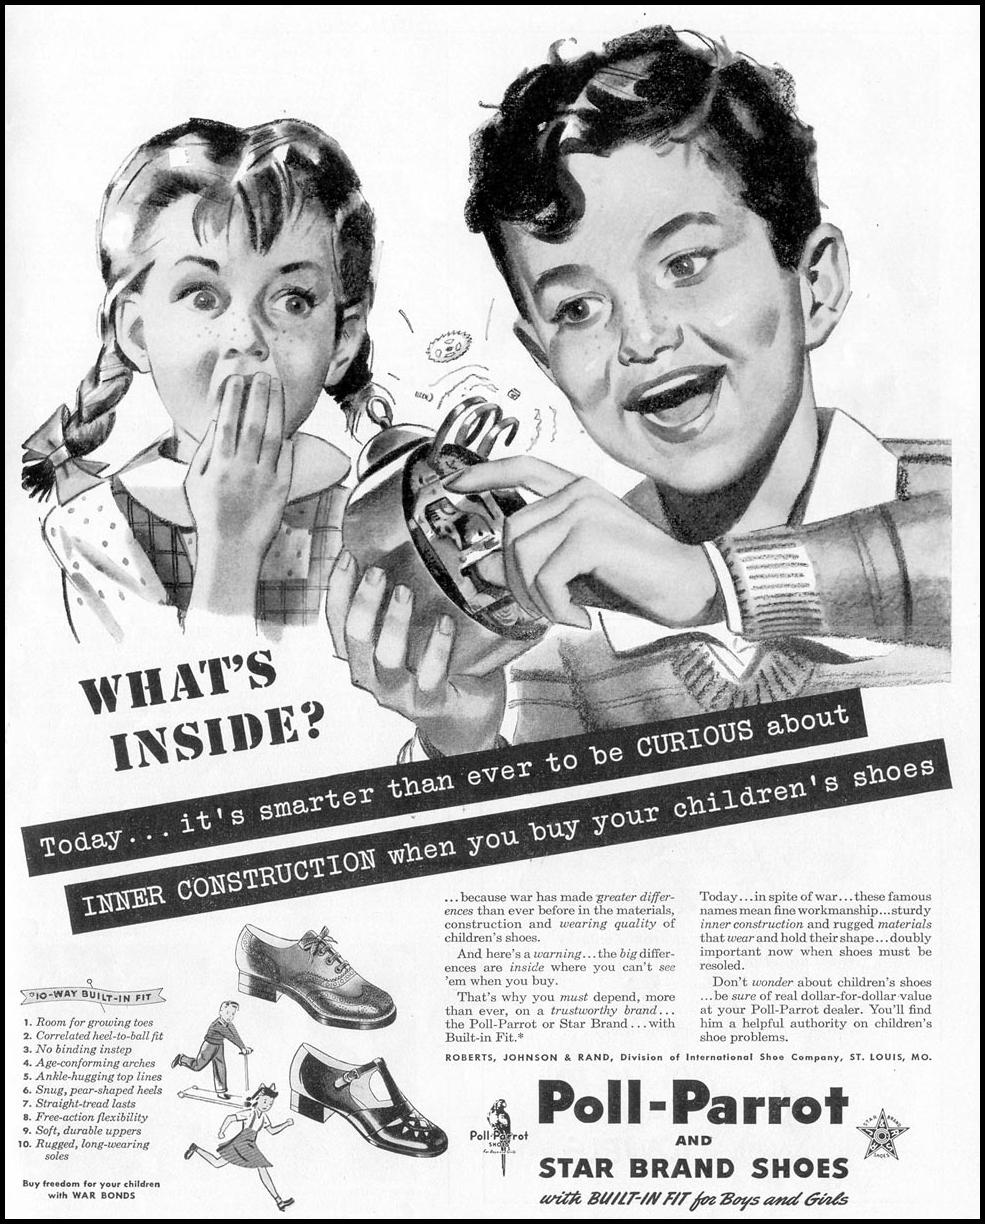 POLL-PARROT SHOES LIFE 02/28/1944 p. 91